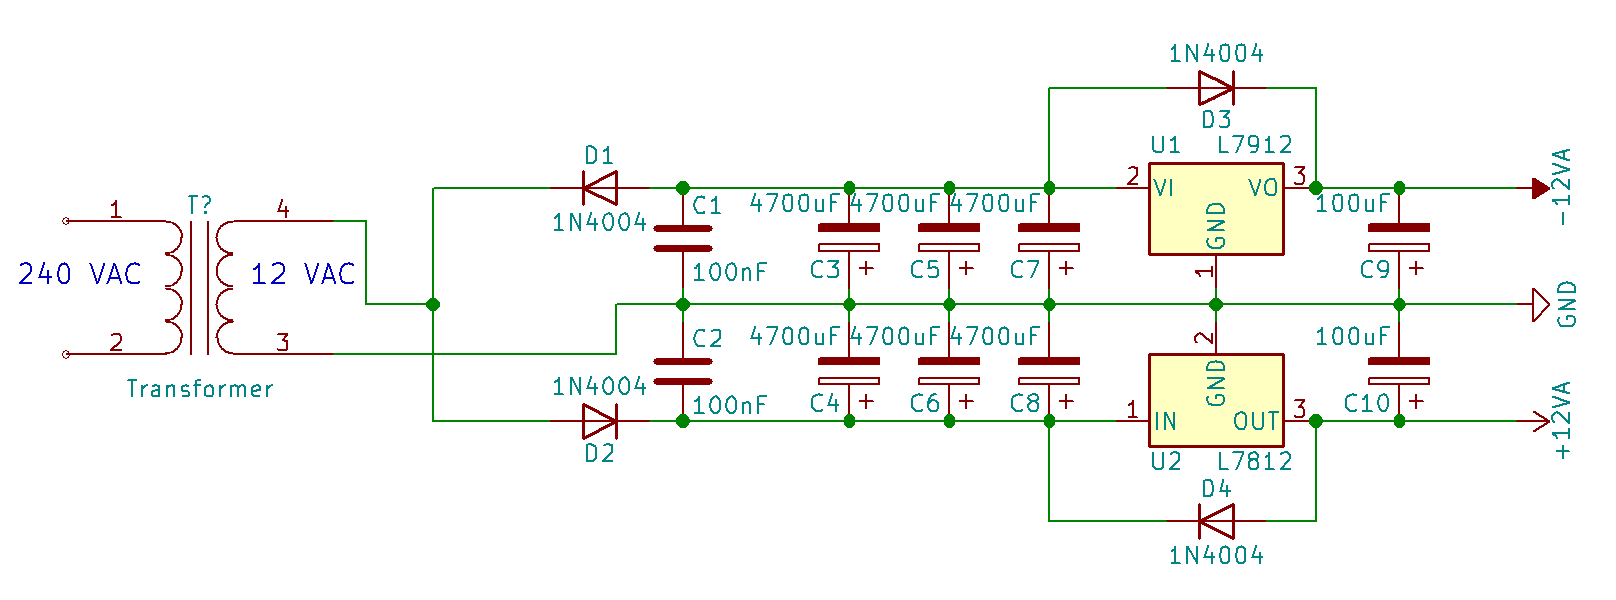 Sos Forum Possible Issue With L7812 Voltage Regulator Shunt Circuit